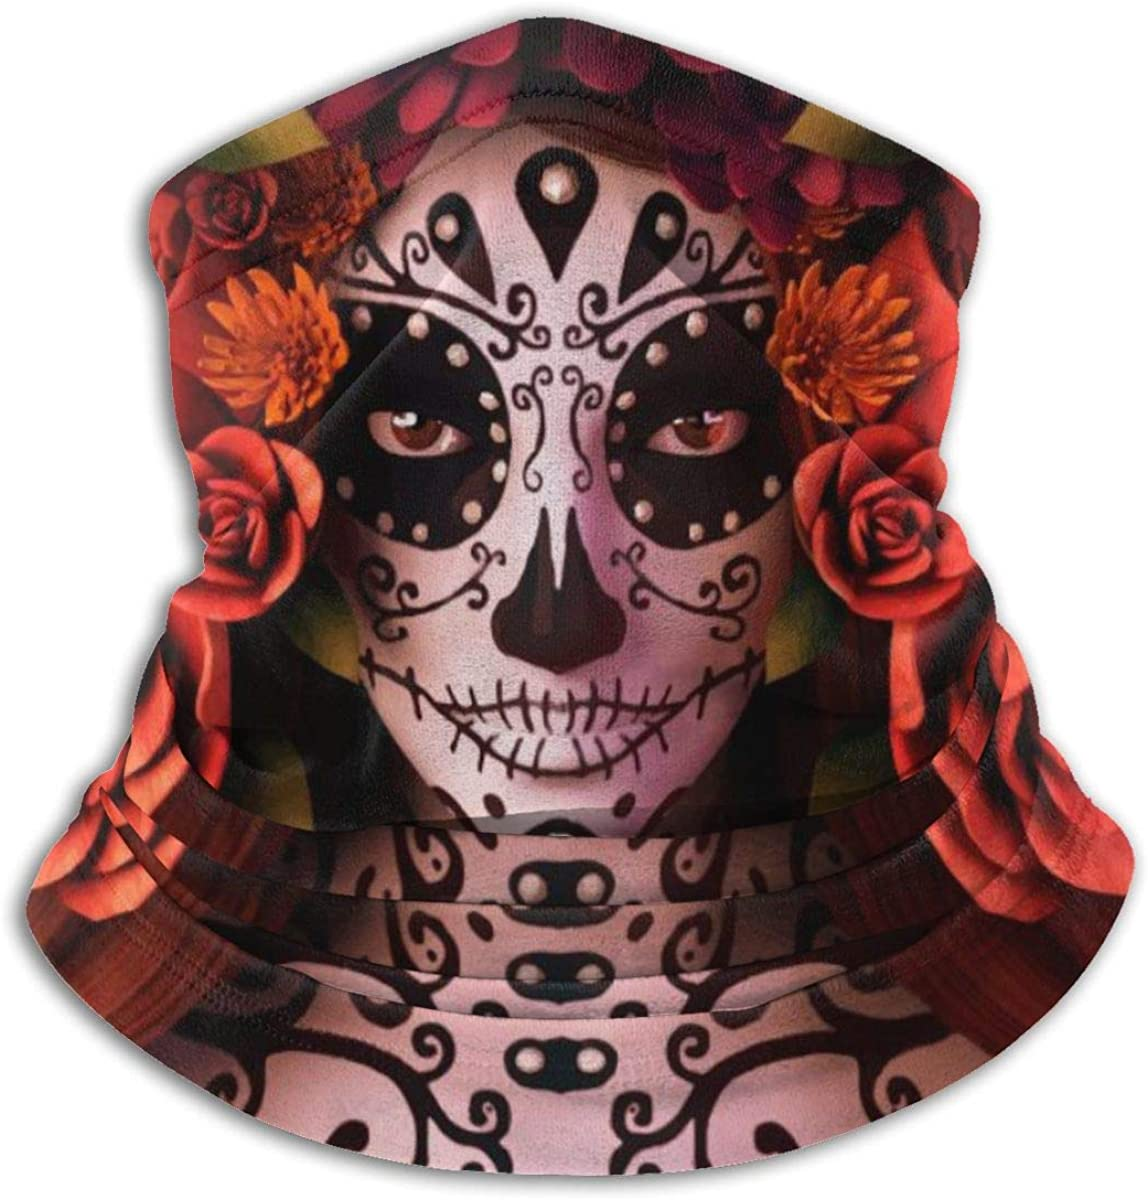 Unisex Bandanas Face Mask Sugar Skulls and Roses Day of Dead Halloween Neck Gaiter Balaclava Sports Headwear Sun Uv Dust Half Scarf Mouth Cover for Women Men Cycling Rave Fishing Outdoor Festivals